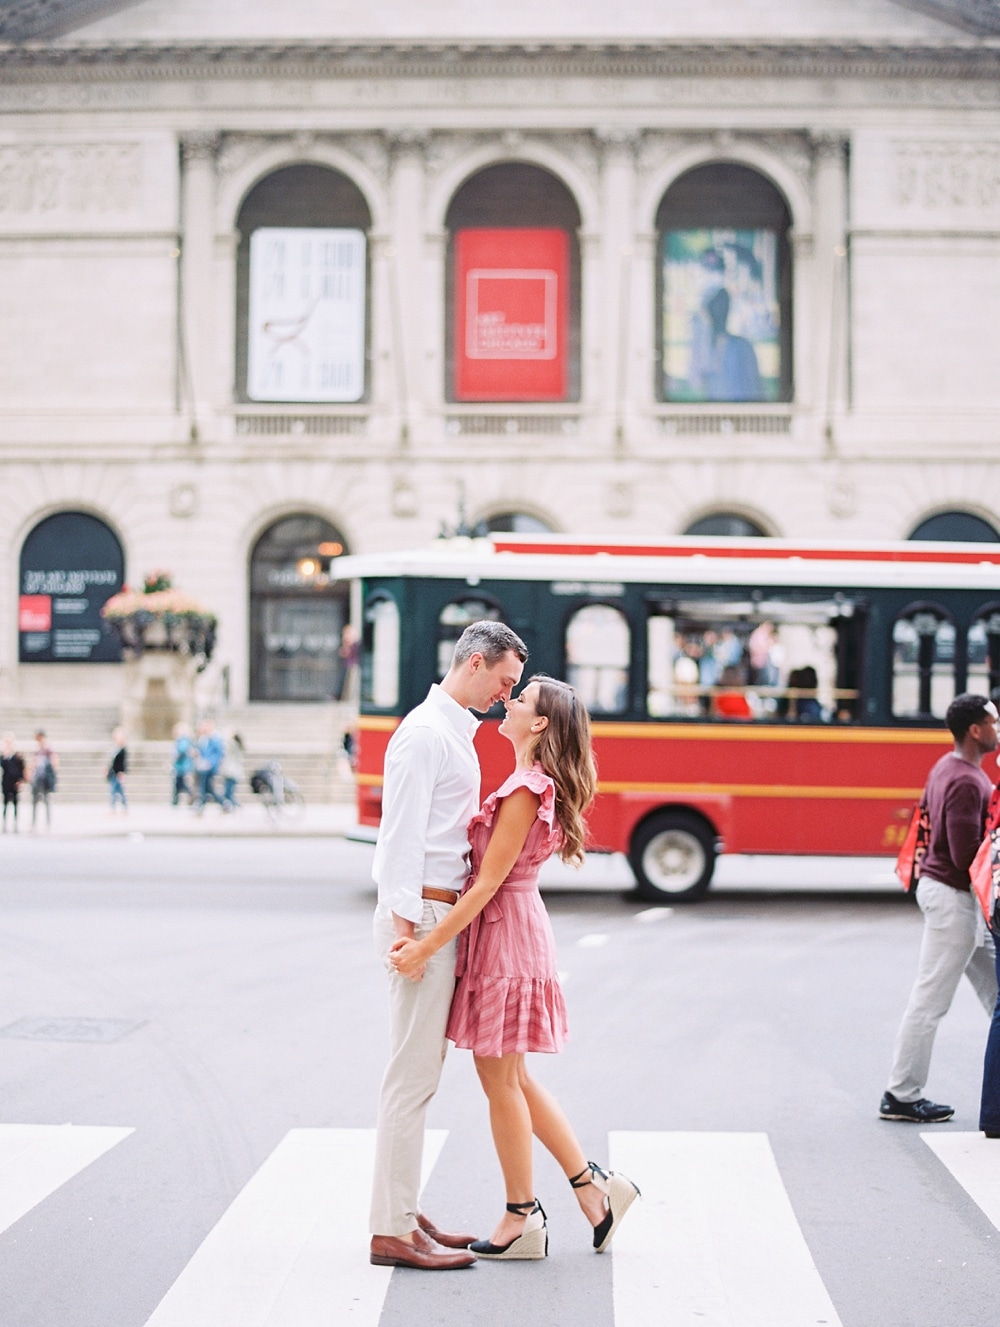 Kristin-La-Voie-Photography-chicago-art-institute-engagement-wedding-photos-45